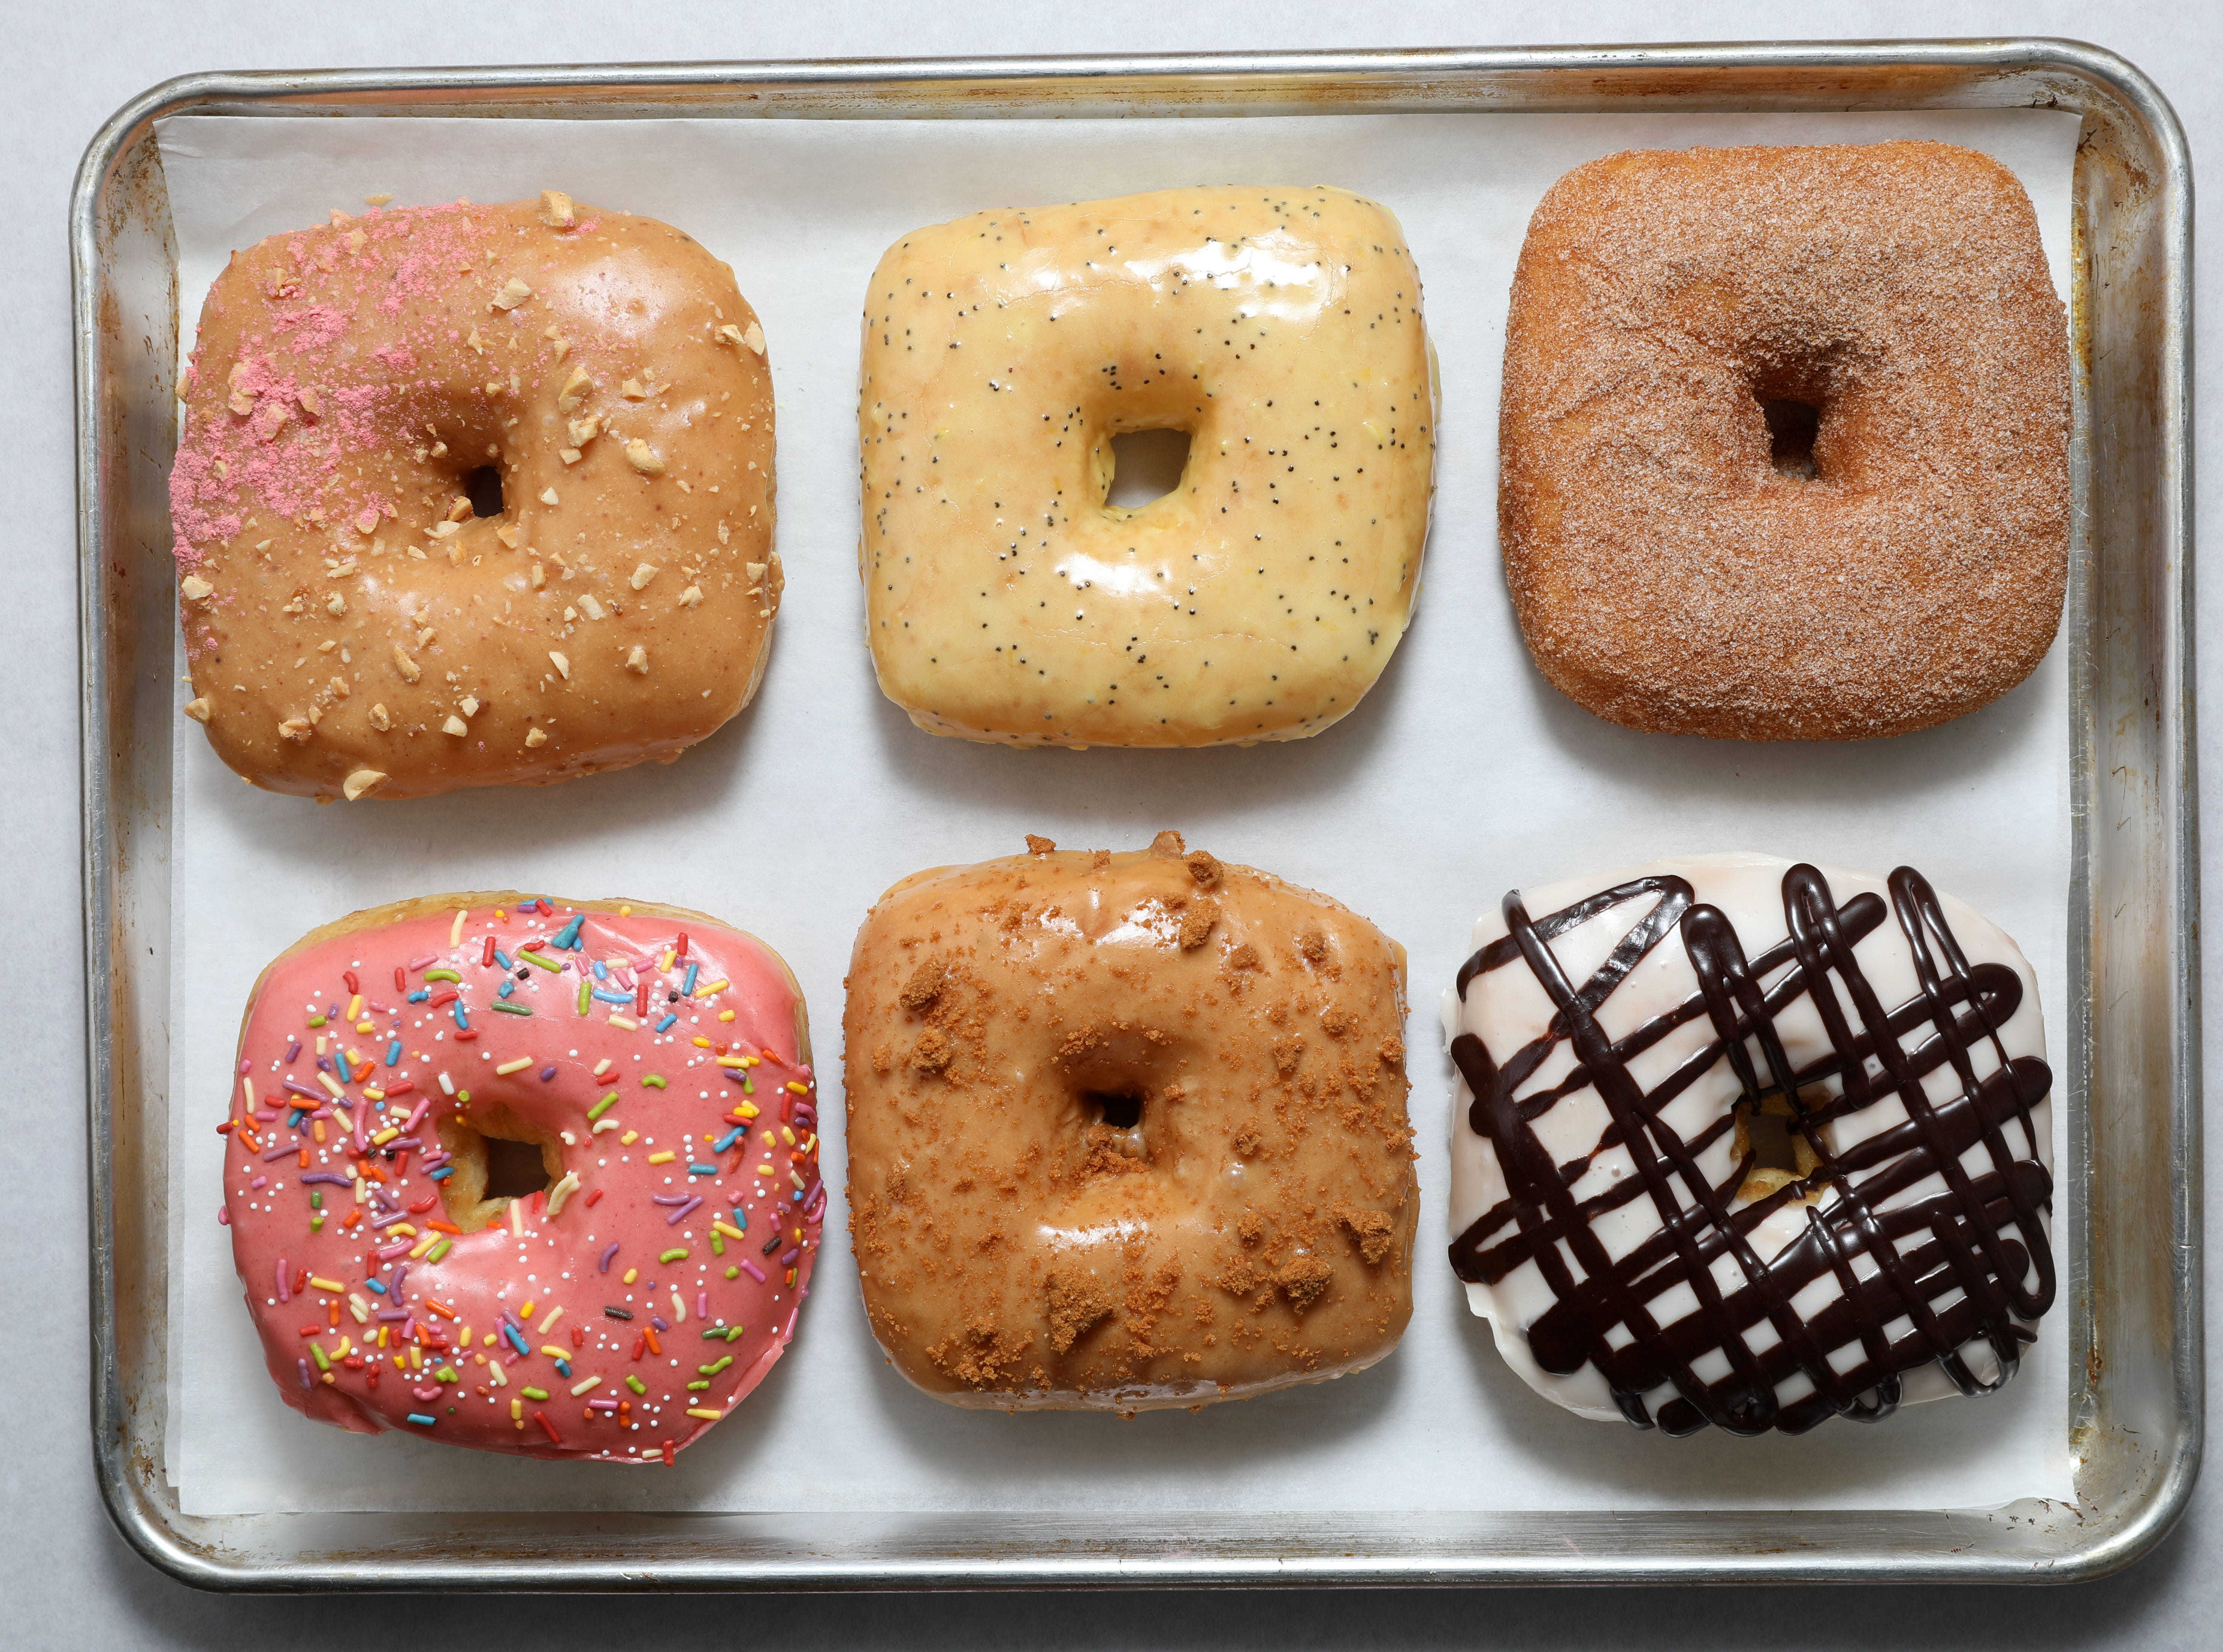 An assortment of vegan doughnuts by Peaceful Provisions Feb. 18, 2019 in Tarrytown. Top row from left: peanut butter with roasted peanuts and strawberry powder, lemon poppy seed glaze, cinnamon sugar. Bottom row from left: strawberry glaze with sprinkles, cookie butter icing with cookie crumble, vanilla glaze with chocolate marble.